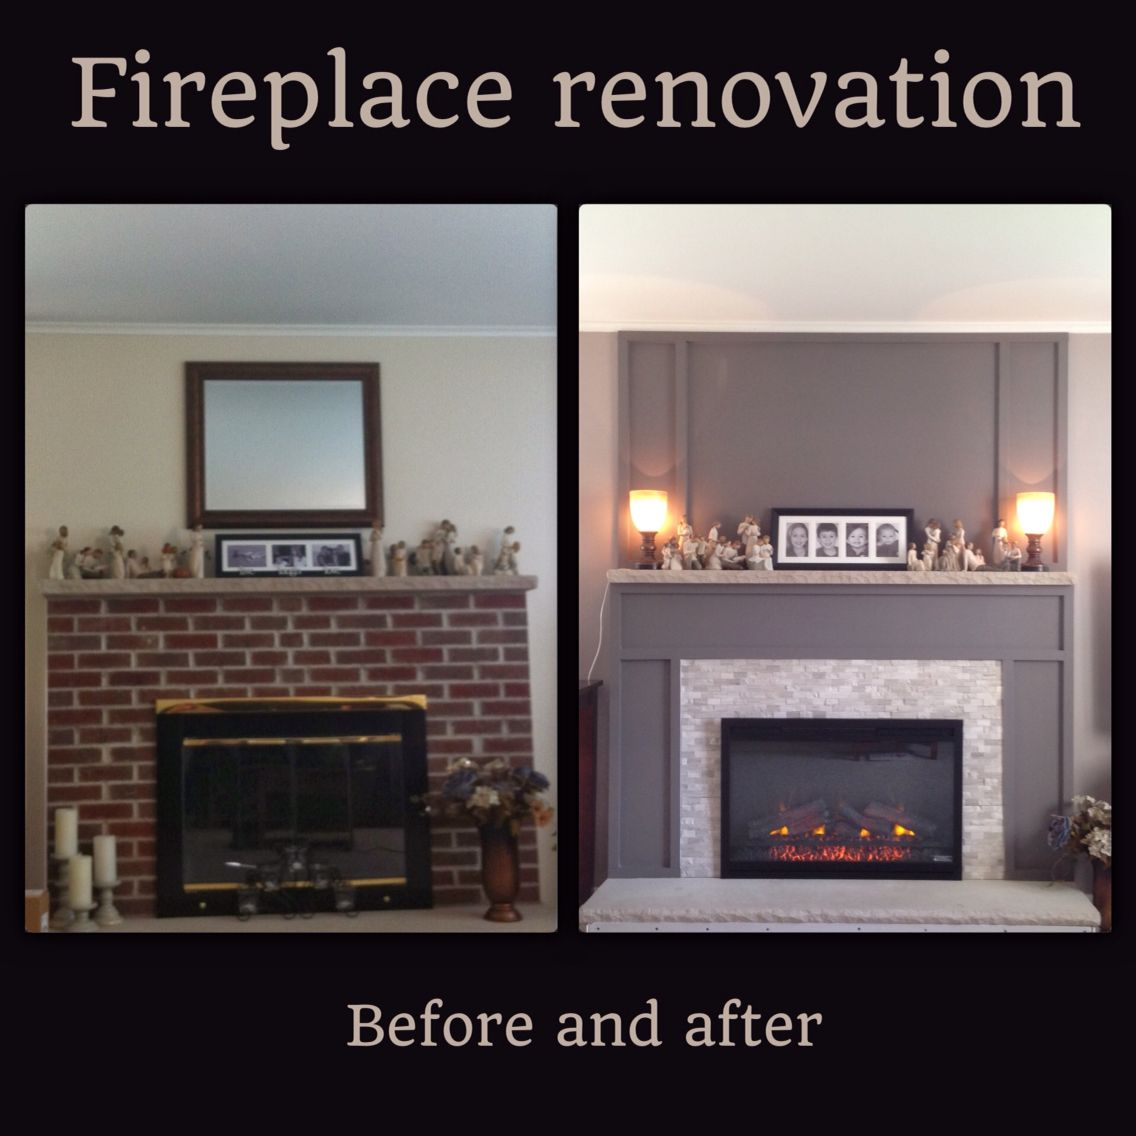 Brick Fireplace Renovation Cover Old With Drywall Into Add Stone Around Unit Or Tile And Then Molding Detail Primed Pine